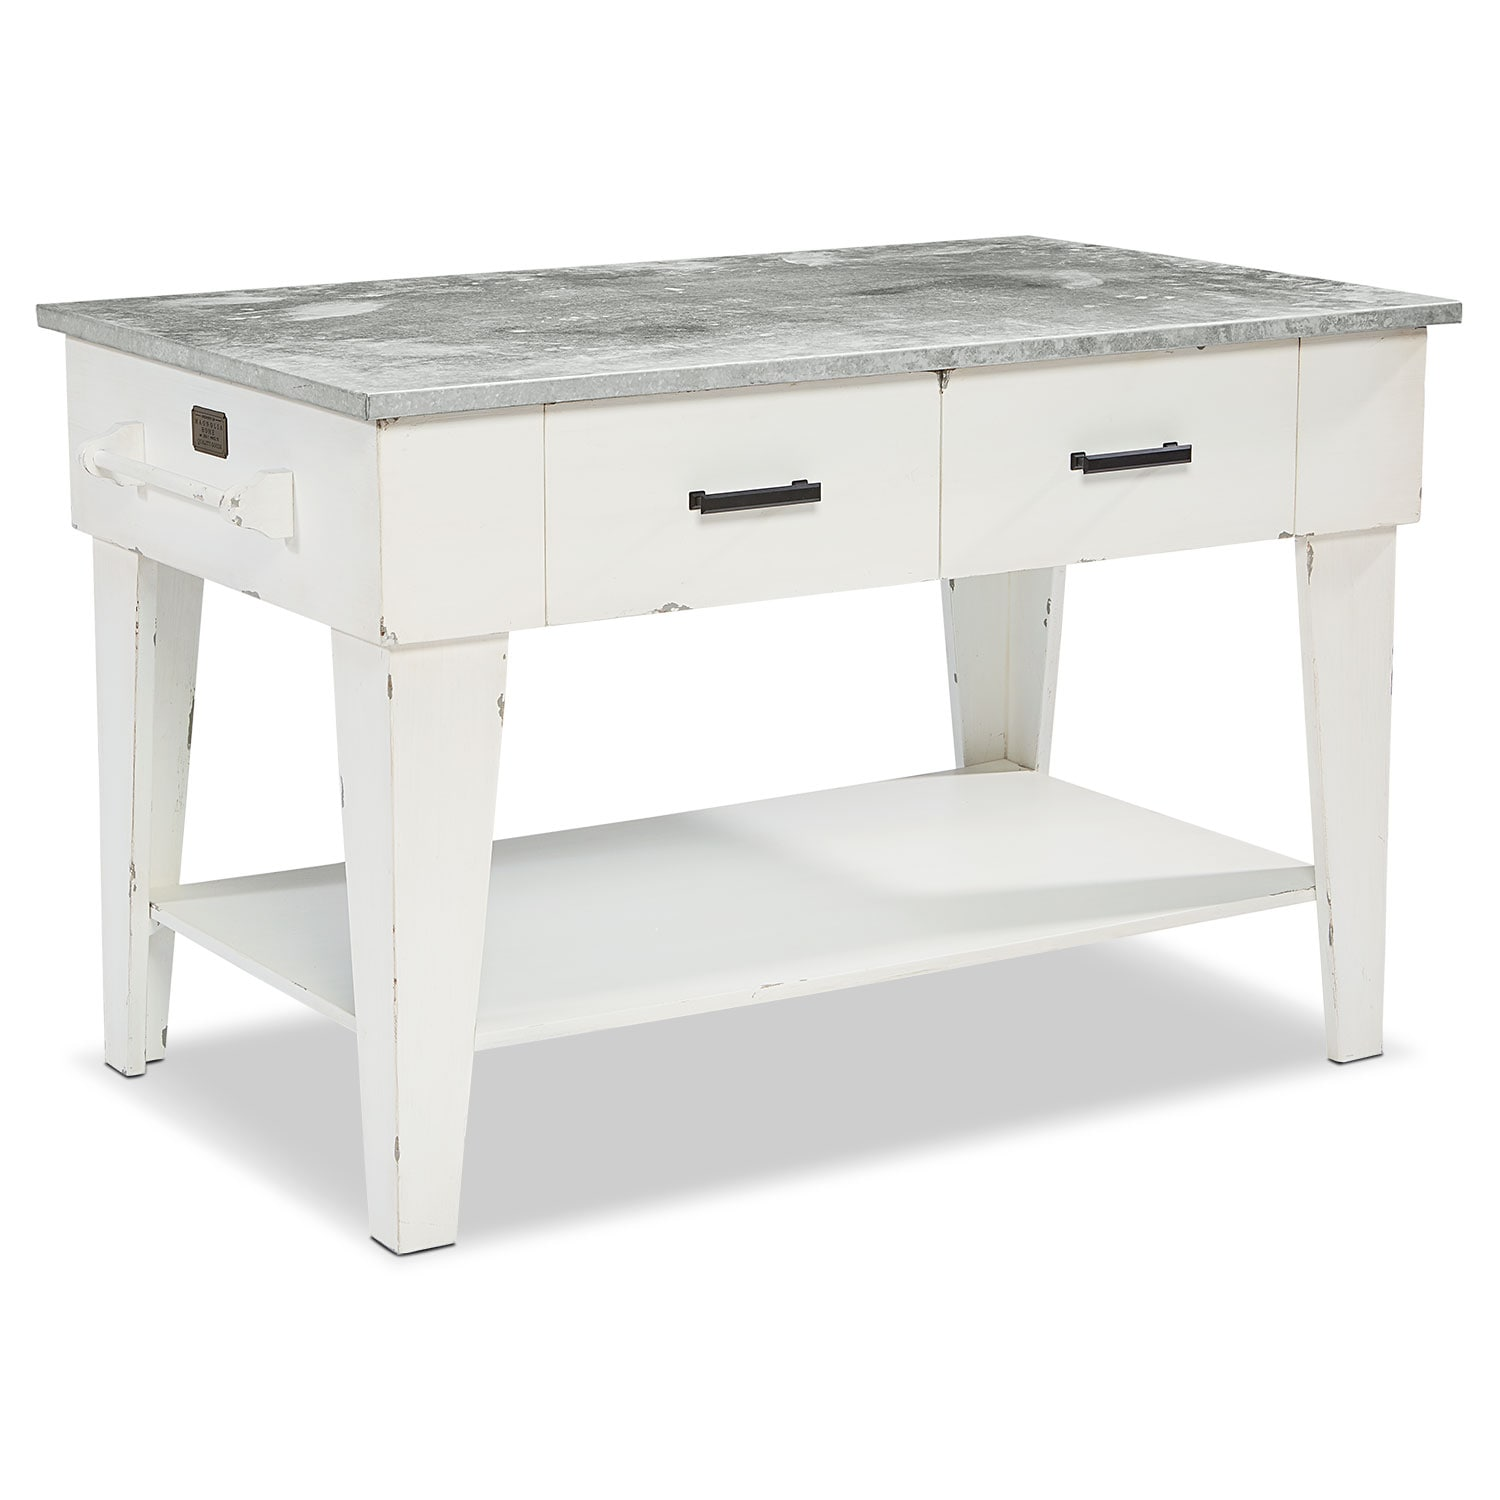 Farmhouse Kitchen Island - White